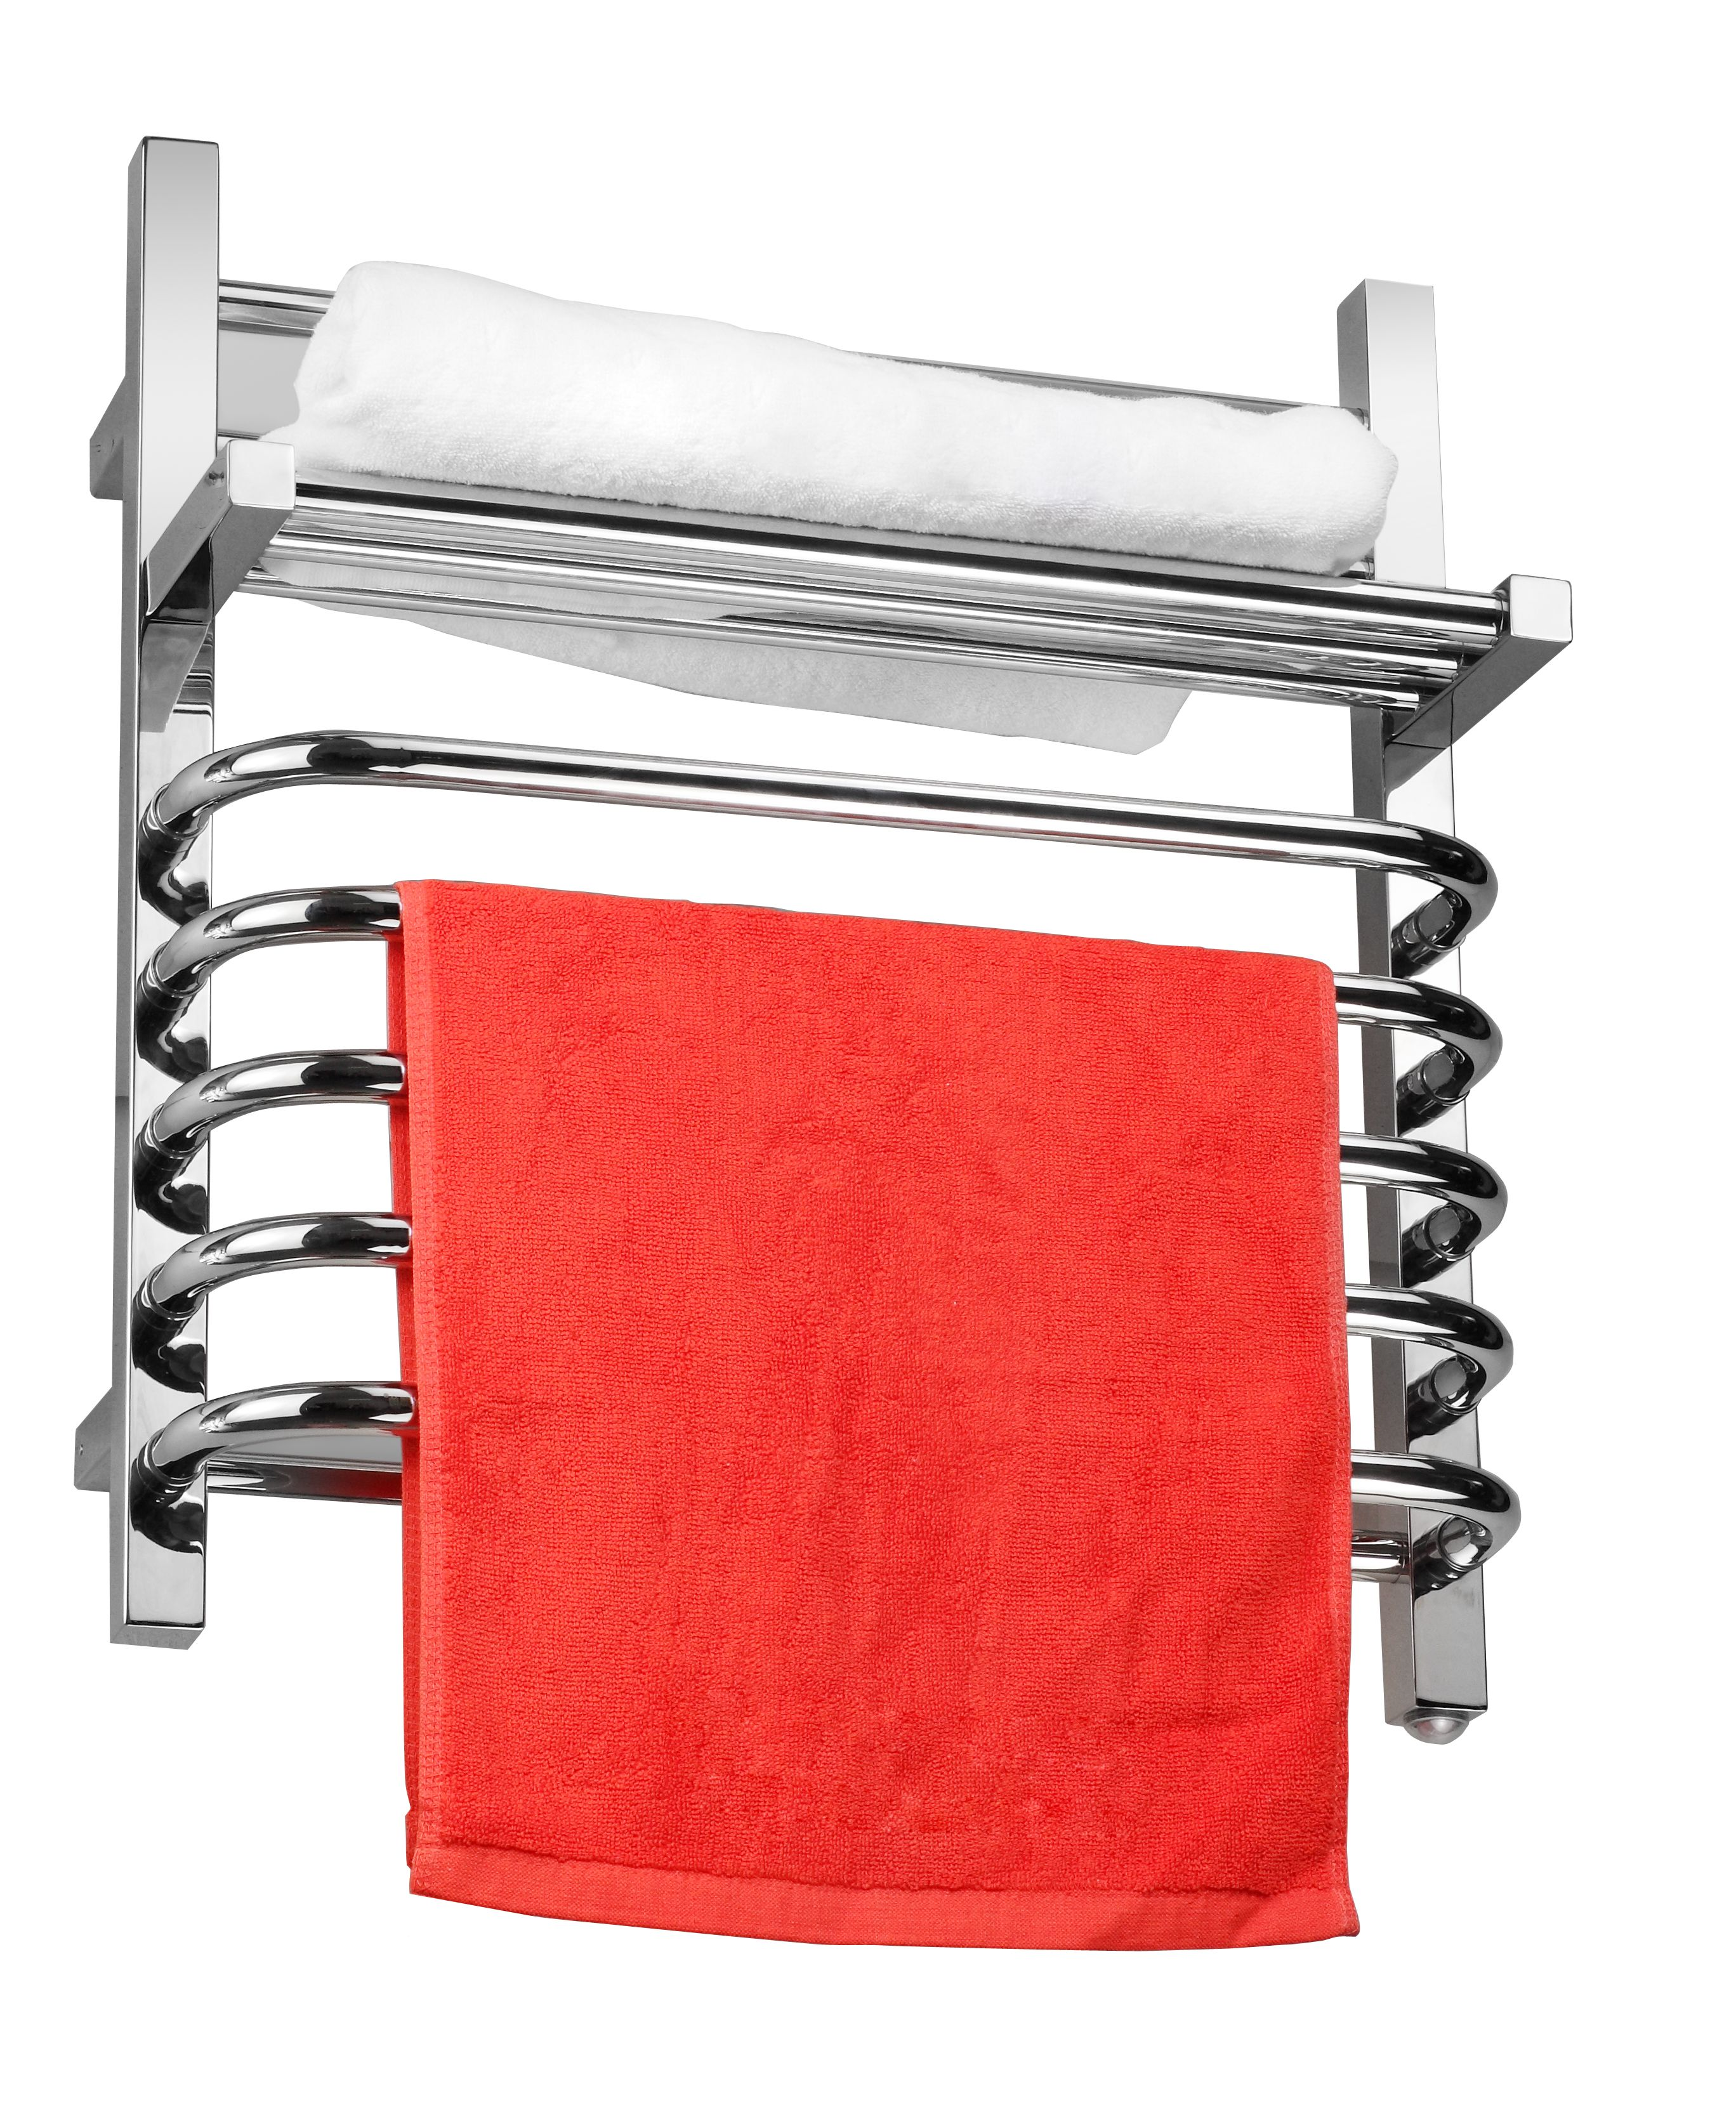 Electric towel warmer efficiently dry off soppy towels